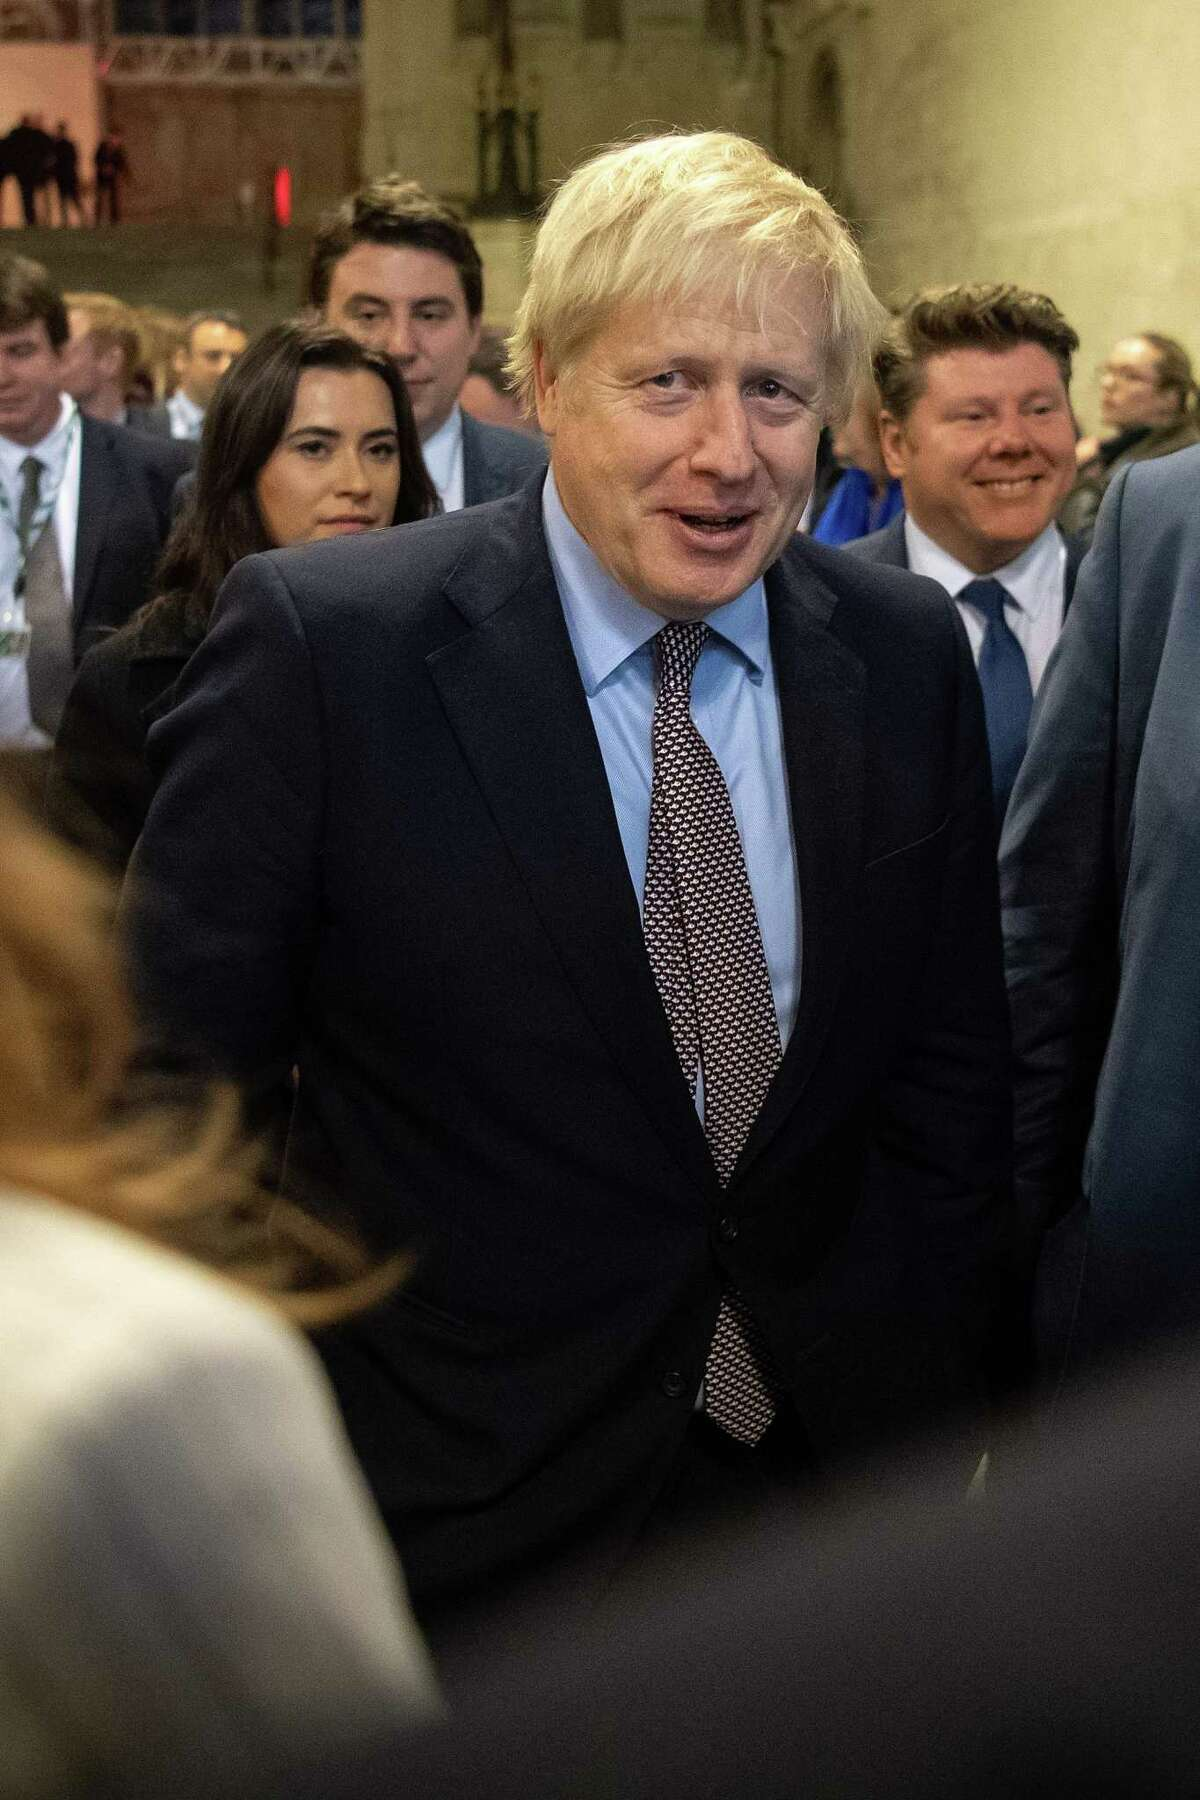 Britain's Prime Minister Boris Johnson talks to newly-elected Conservative MPs in Westminster Hall in the Palace of Westminster, central London on December 16, 2019. - Prime Minister Boris Johnson got down to work Monday following his sweeping election victory, appointing ministers and announcing plans to publish legislation this week to get Britain out of the European Union. (Photo by Leon Neal / POOL / AFP) (Photo by LEON NEAL/POOL/AFP via Getty Images)